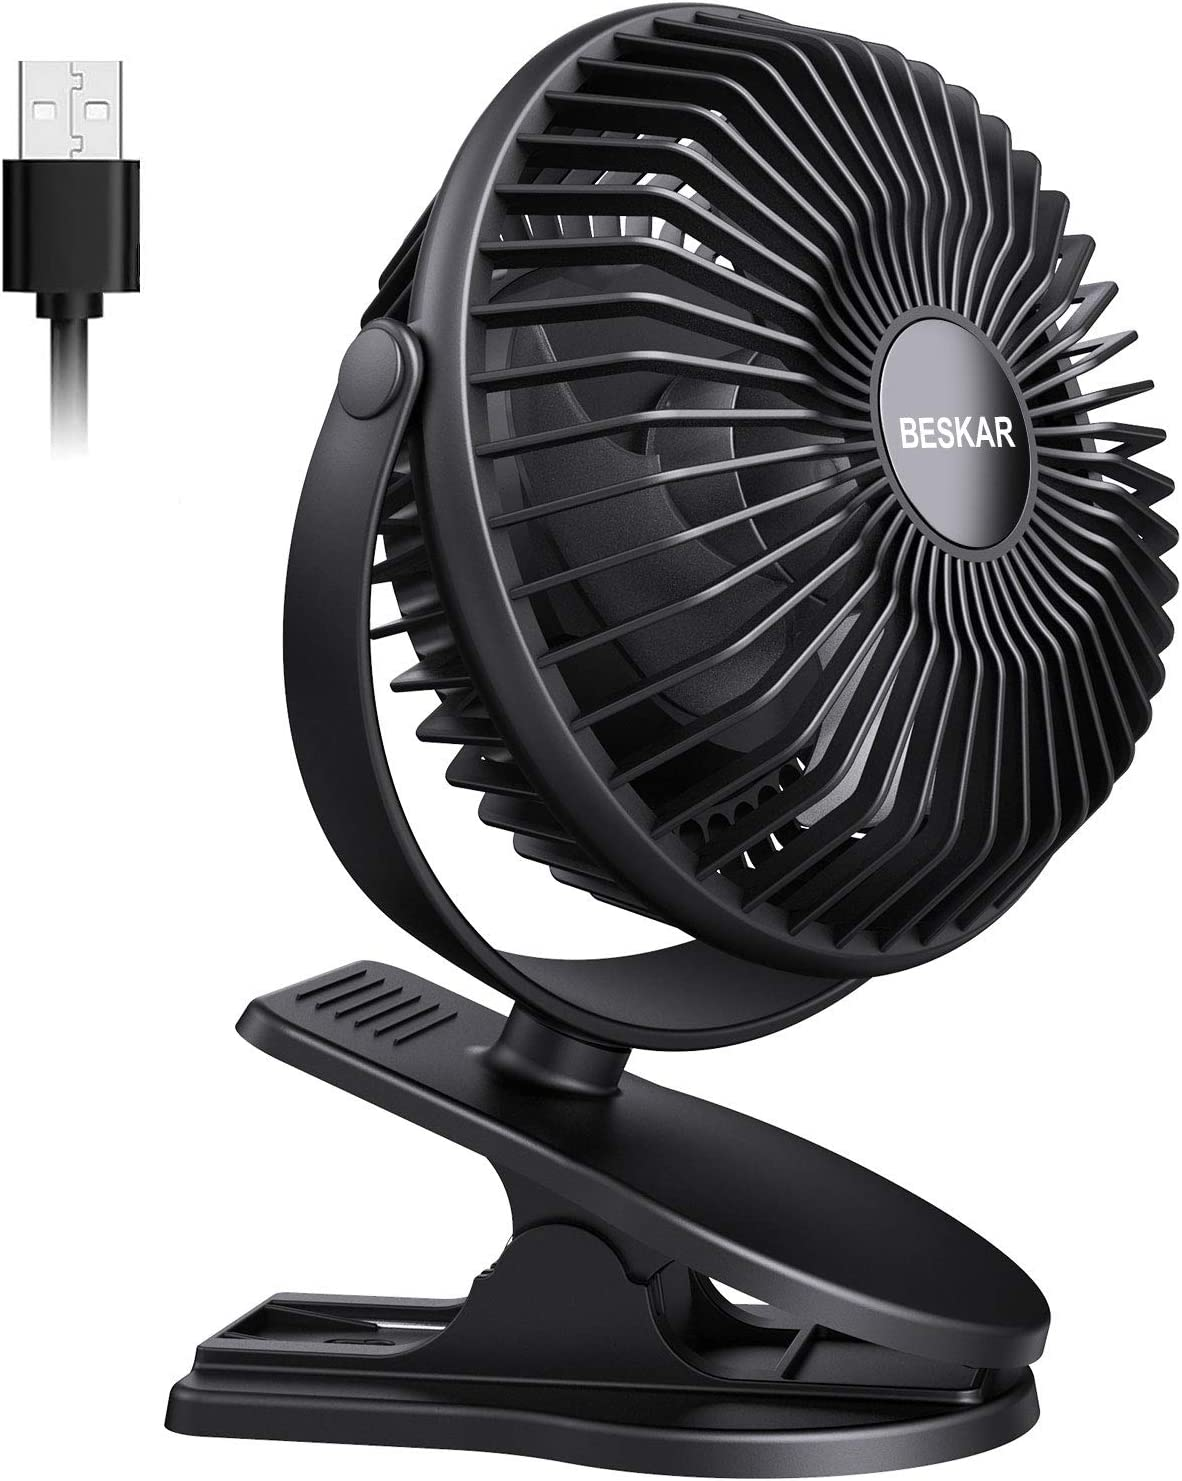 BESKAR USB Powered Clip on Fan,360° Rotation Quiet Stroller Fan with Strong Airflow,3 Speeds Portable Small Fan with Sturdy Clamp,Perfect Personal Cooling Fan for Office Table Bedroom Kitchen